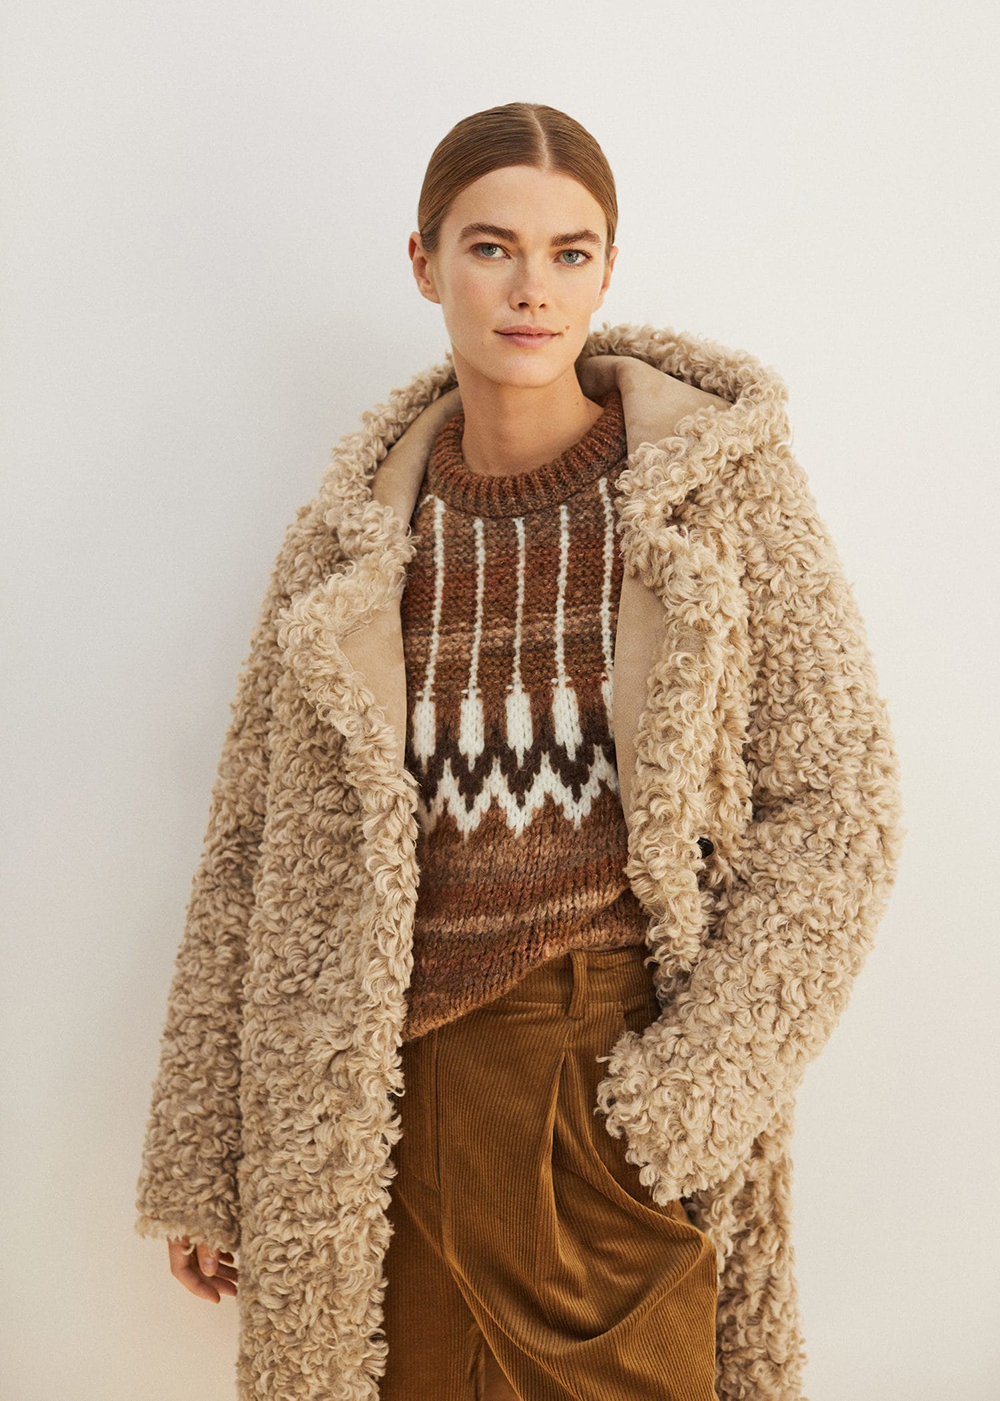 Our 6 favorite fall trends to try! The ultimate guide to what you should buy this season from Jojotastic.com #shopping #fall #fashion #trendreport